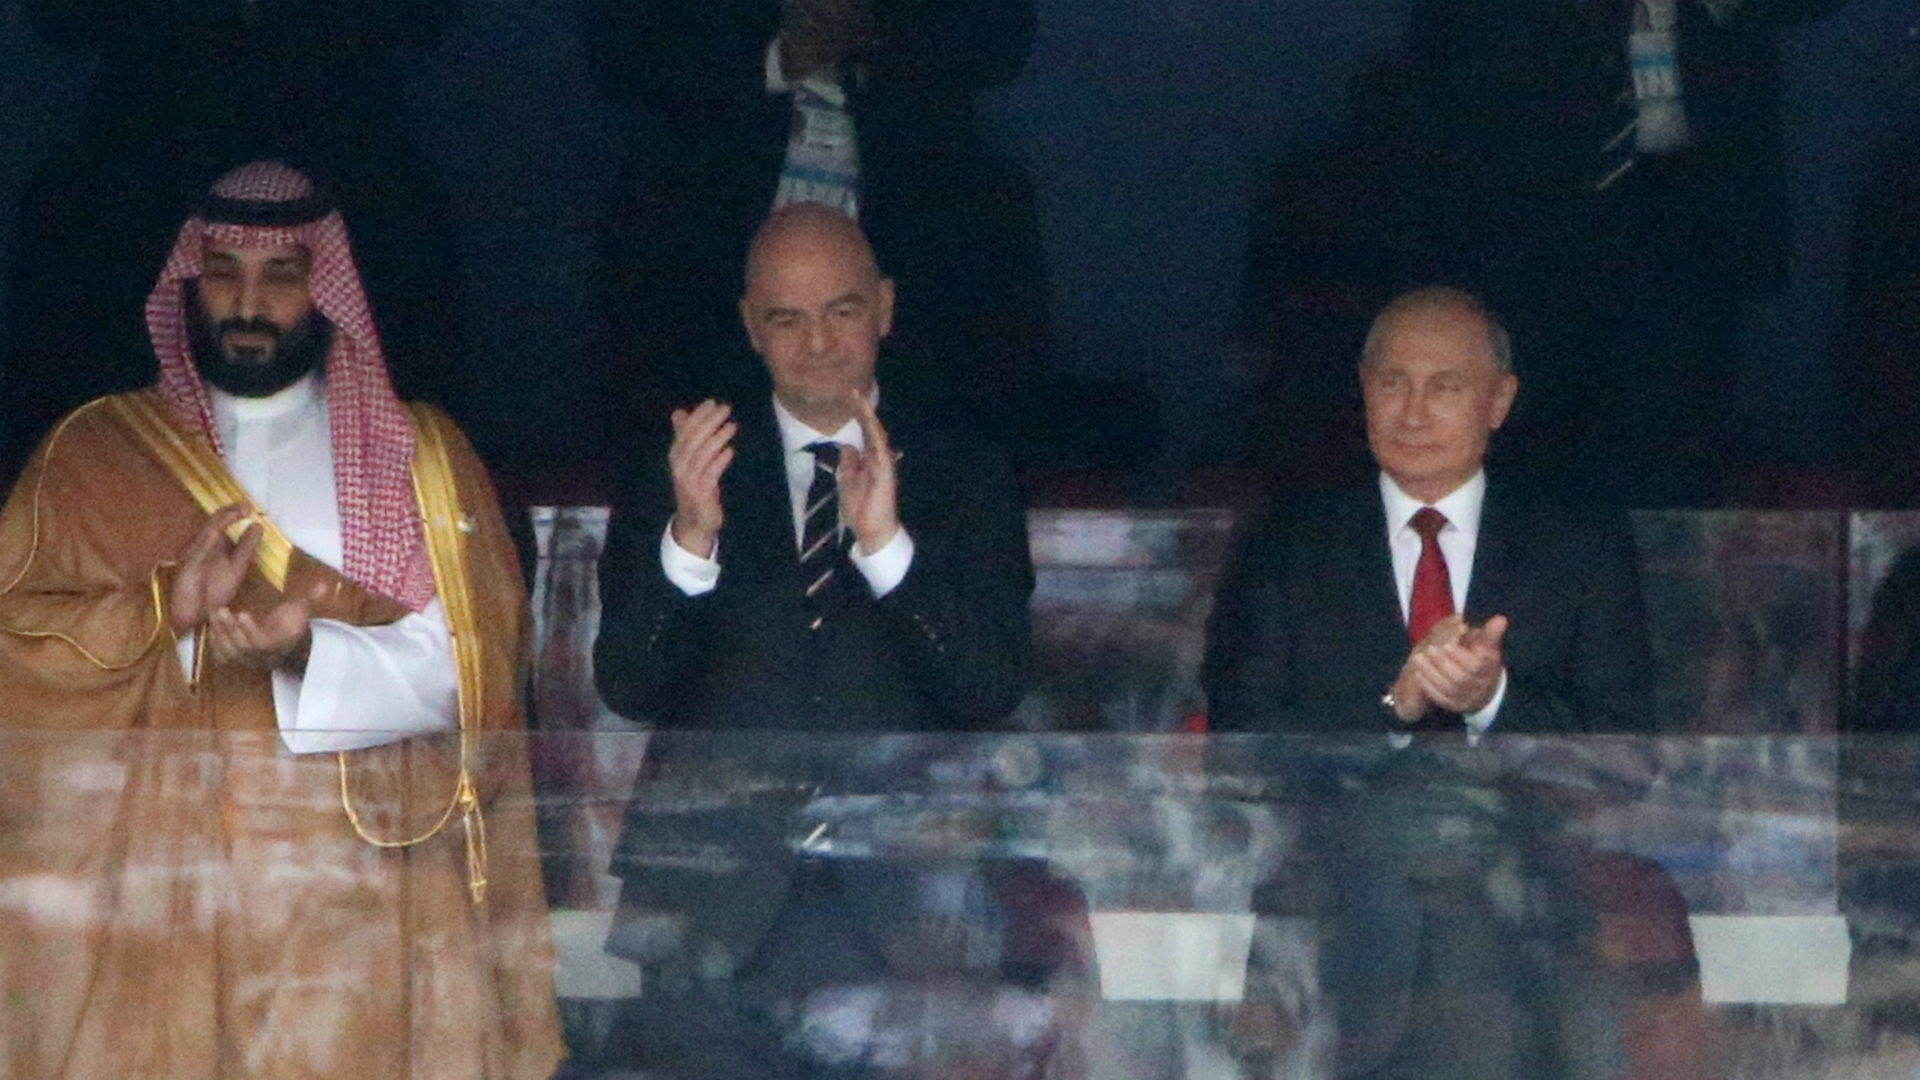 Putin thrilled